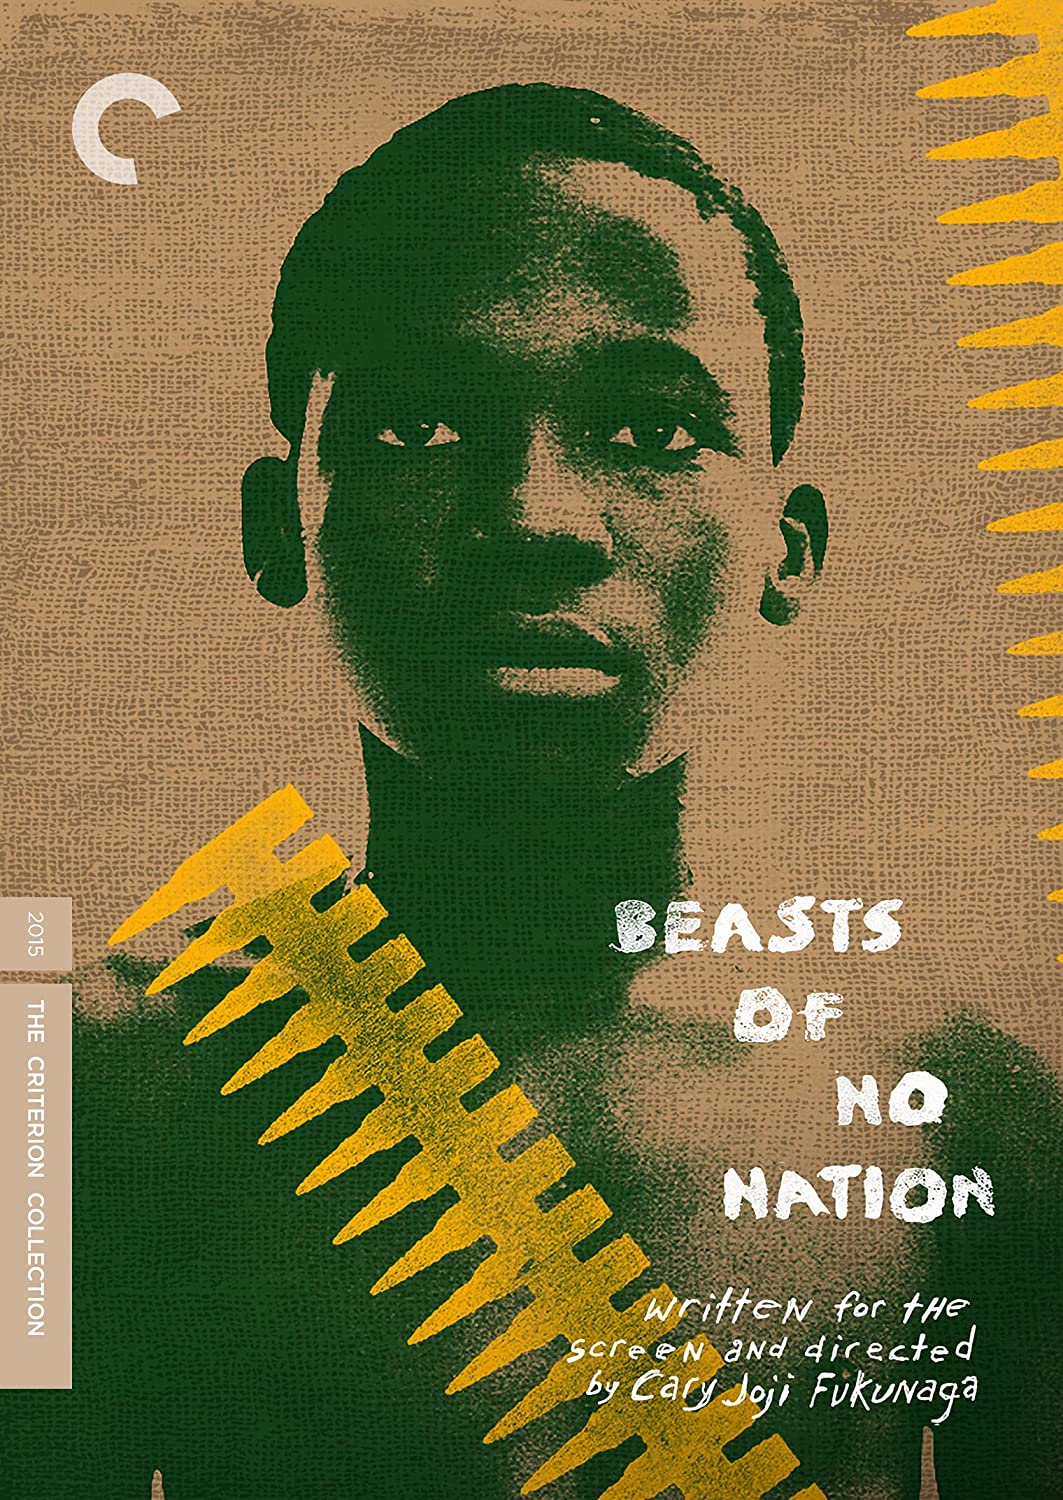 Beasts-of-No-Nation-(DVD)